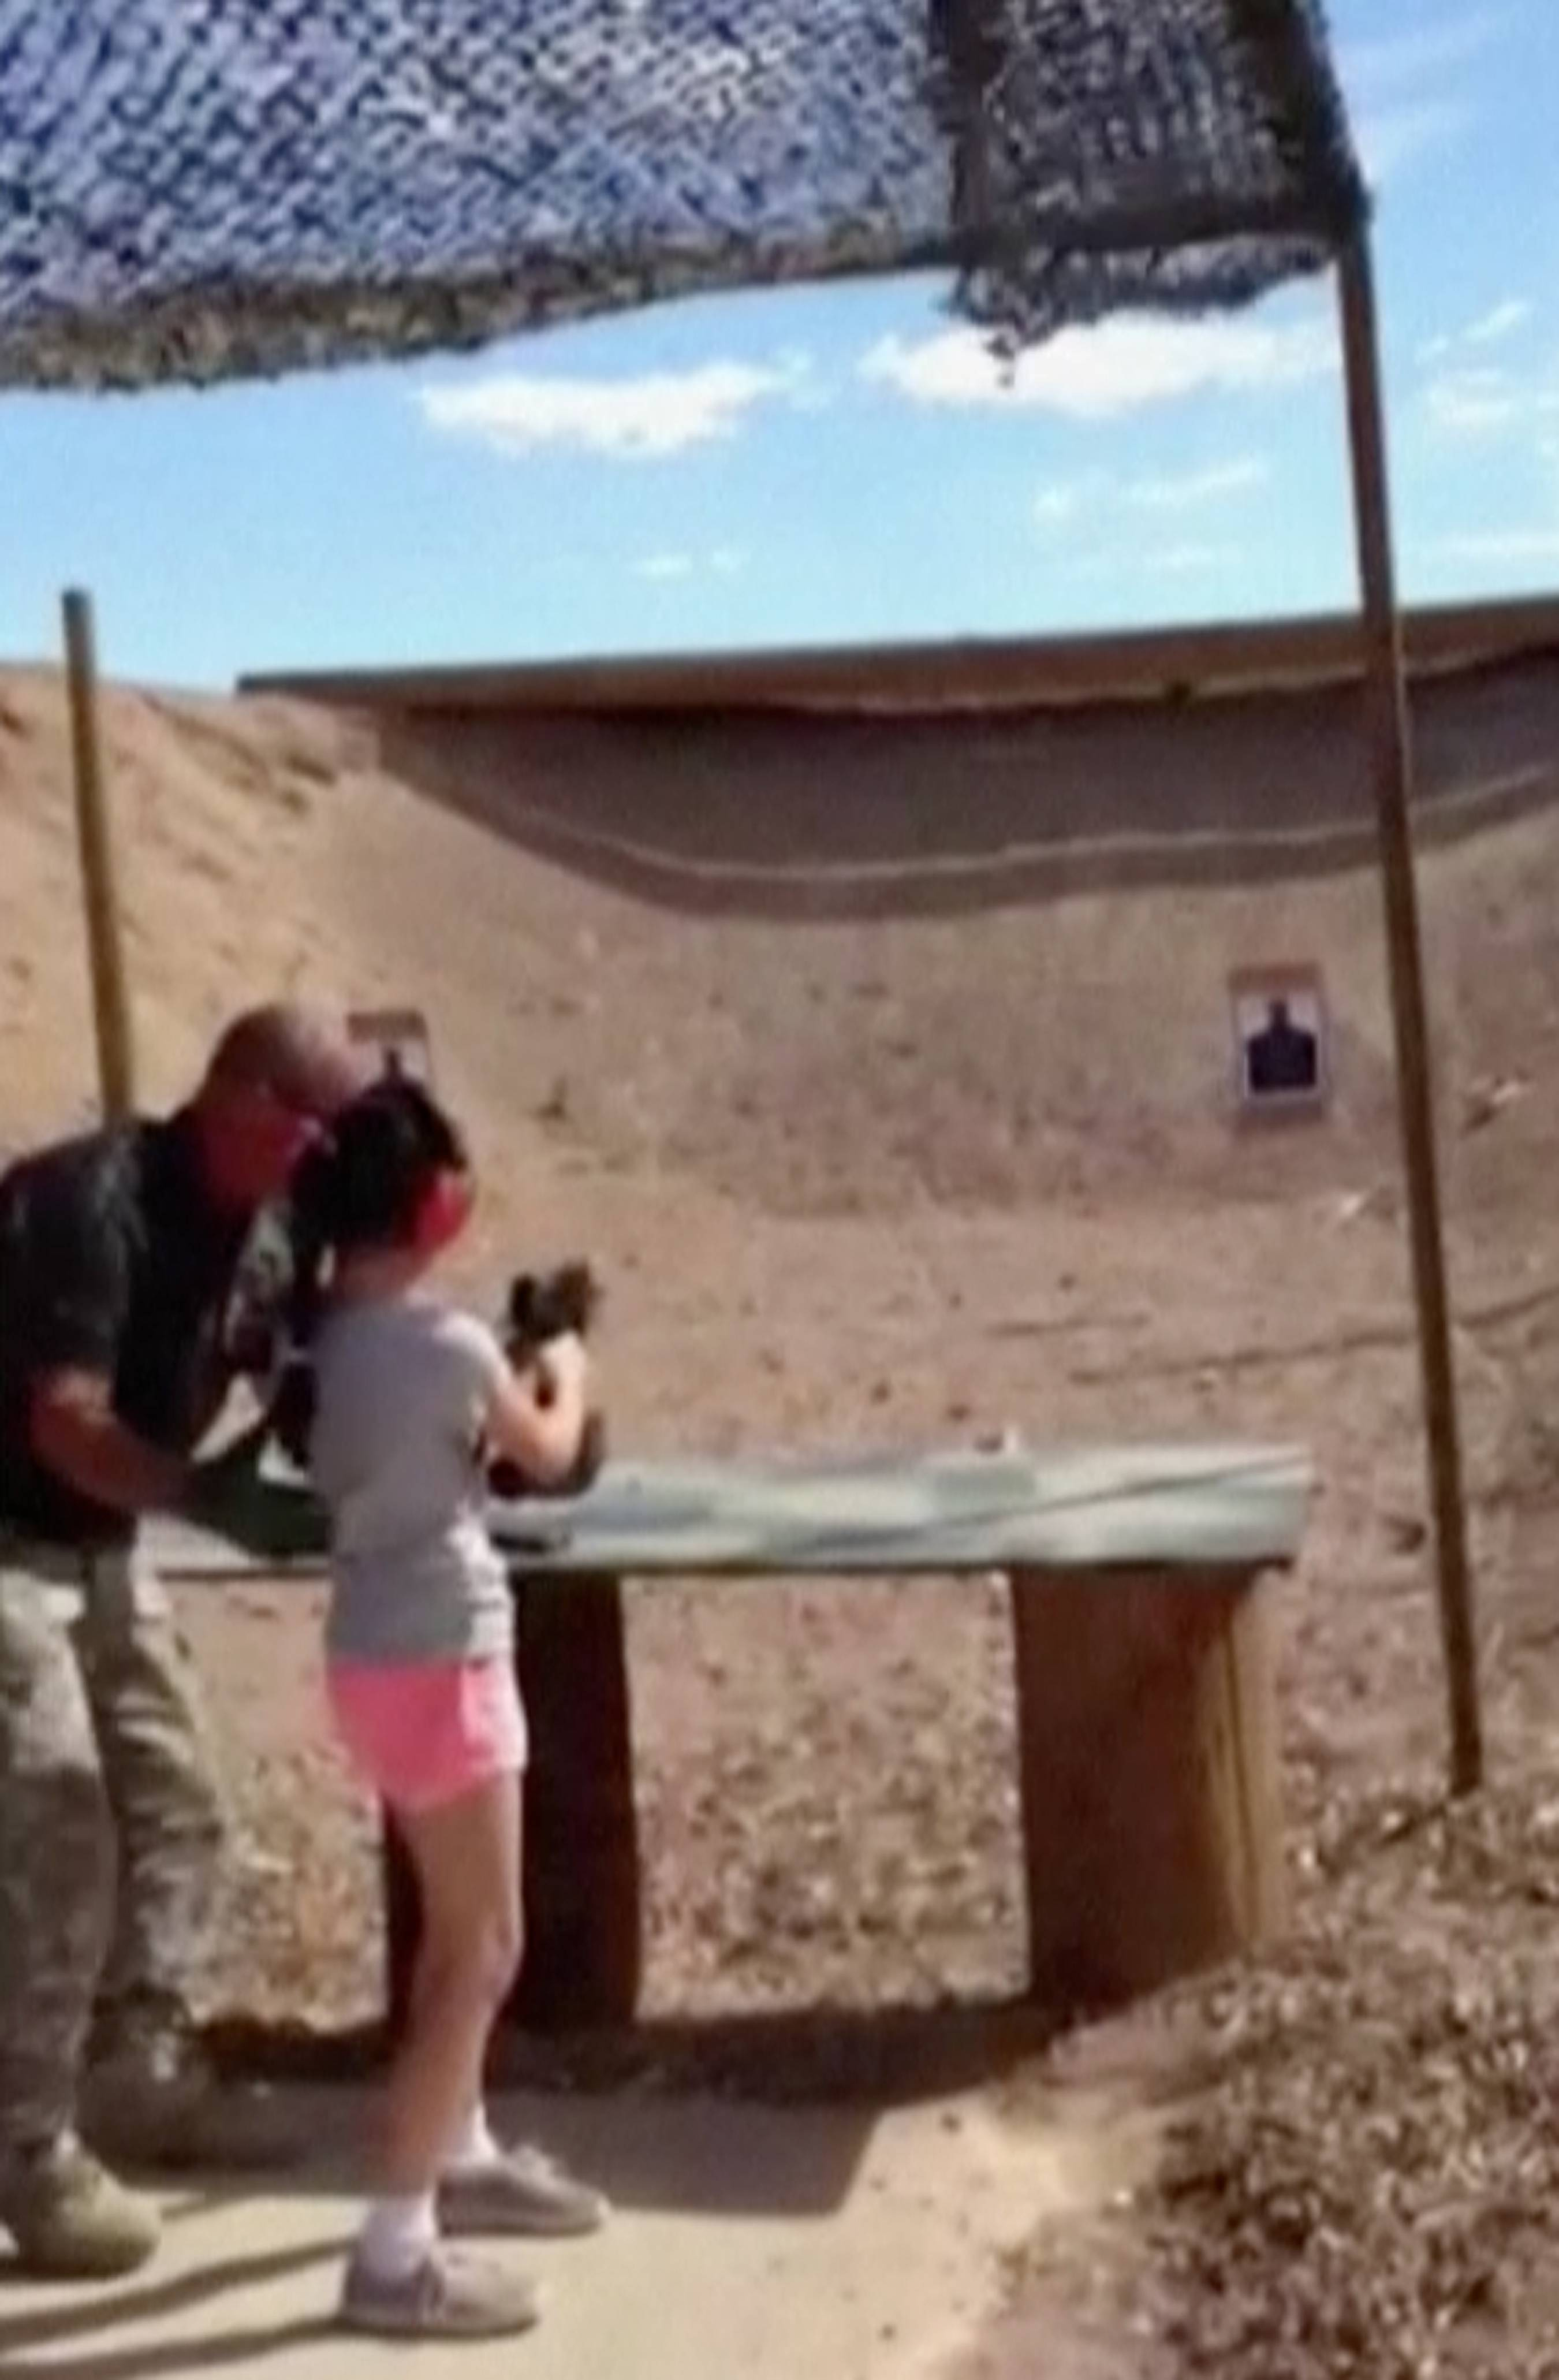 In this image made from video, firing-range instructor Charles Vacca, left, shows a 9-year old girl how to use an Uzi. Vacca, 39, was standing next to the girl on Monday at the Last Stop range in Arizona, south of Las Vegas, when the girl squeezed the trigger, causing the Uzi to recoil upward and shoot Vacca in the head.